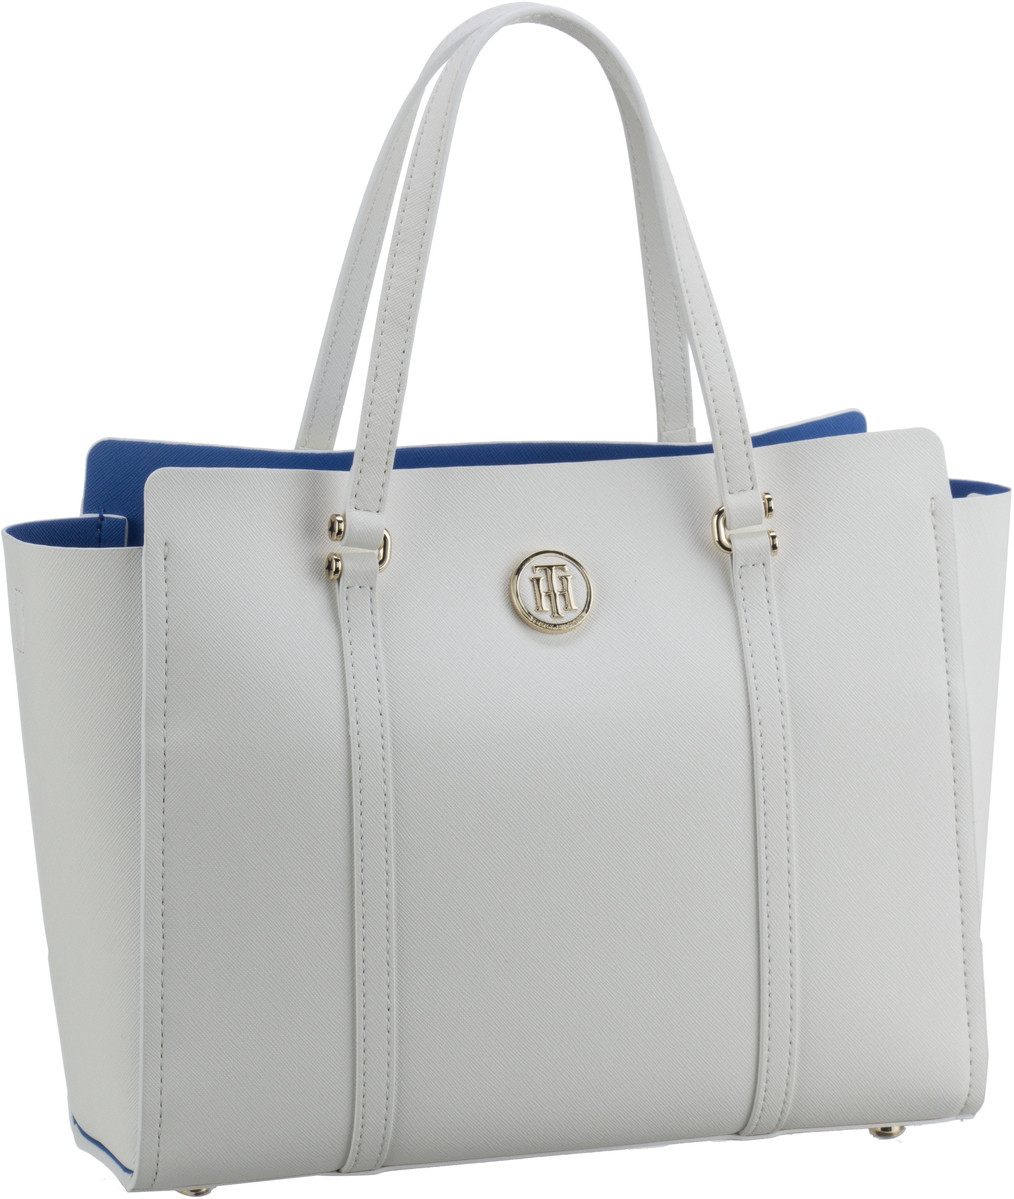 Handtasche Modern Tommy Small Tote 4977 Bright White/Regatta Blue